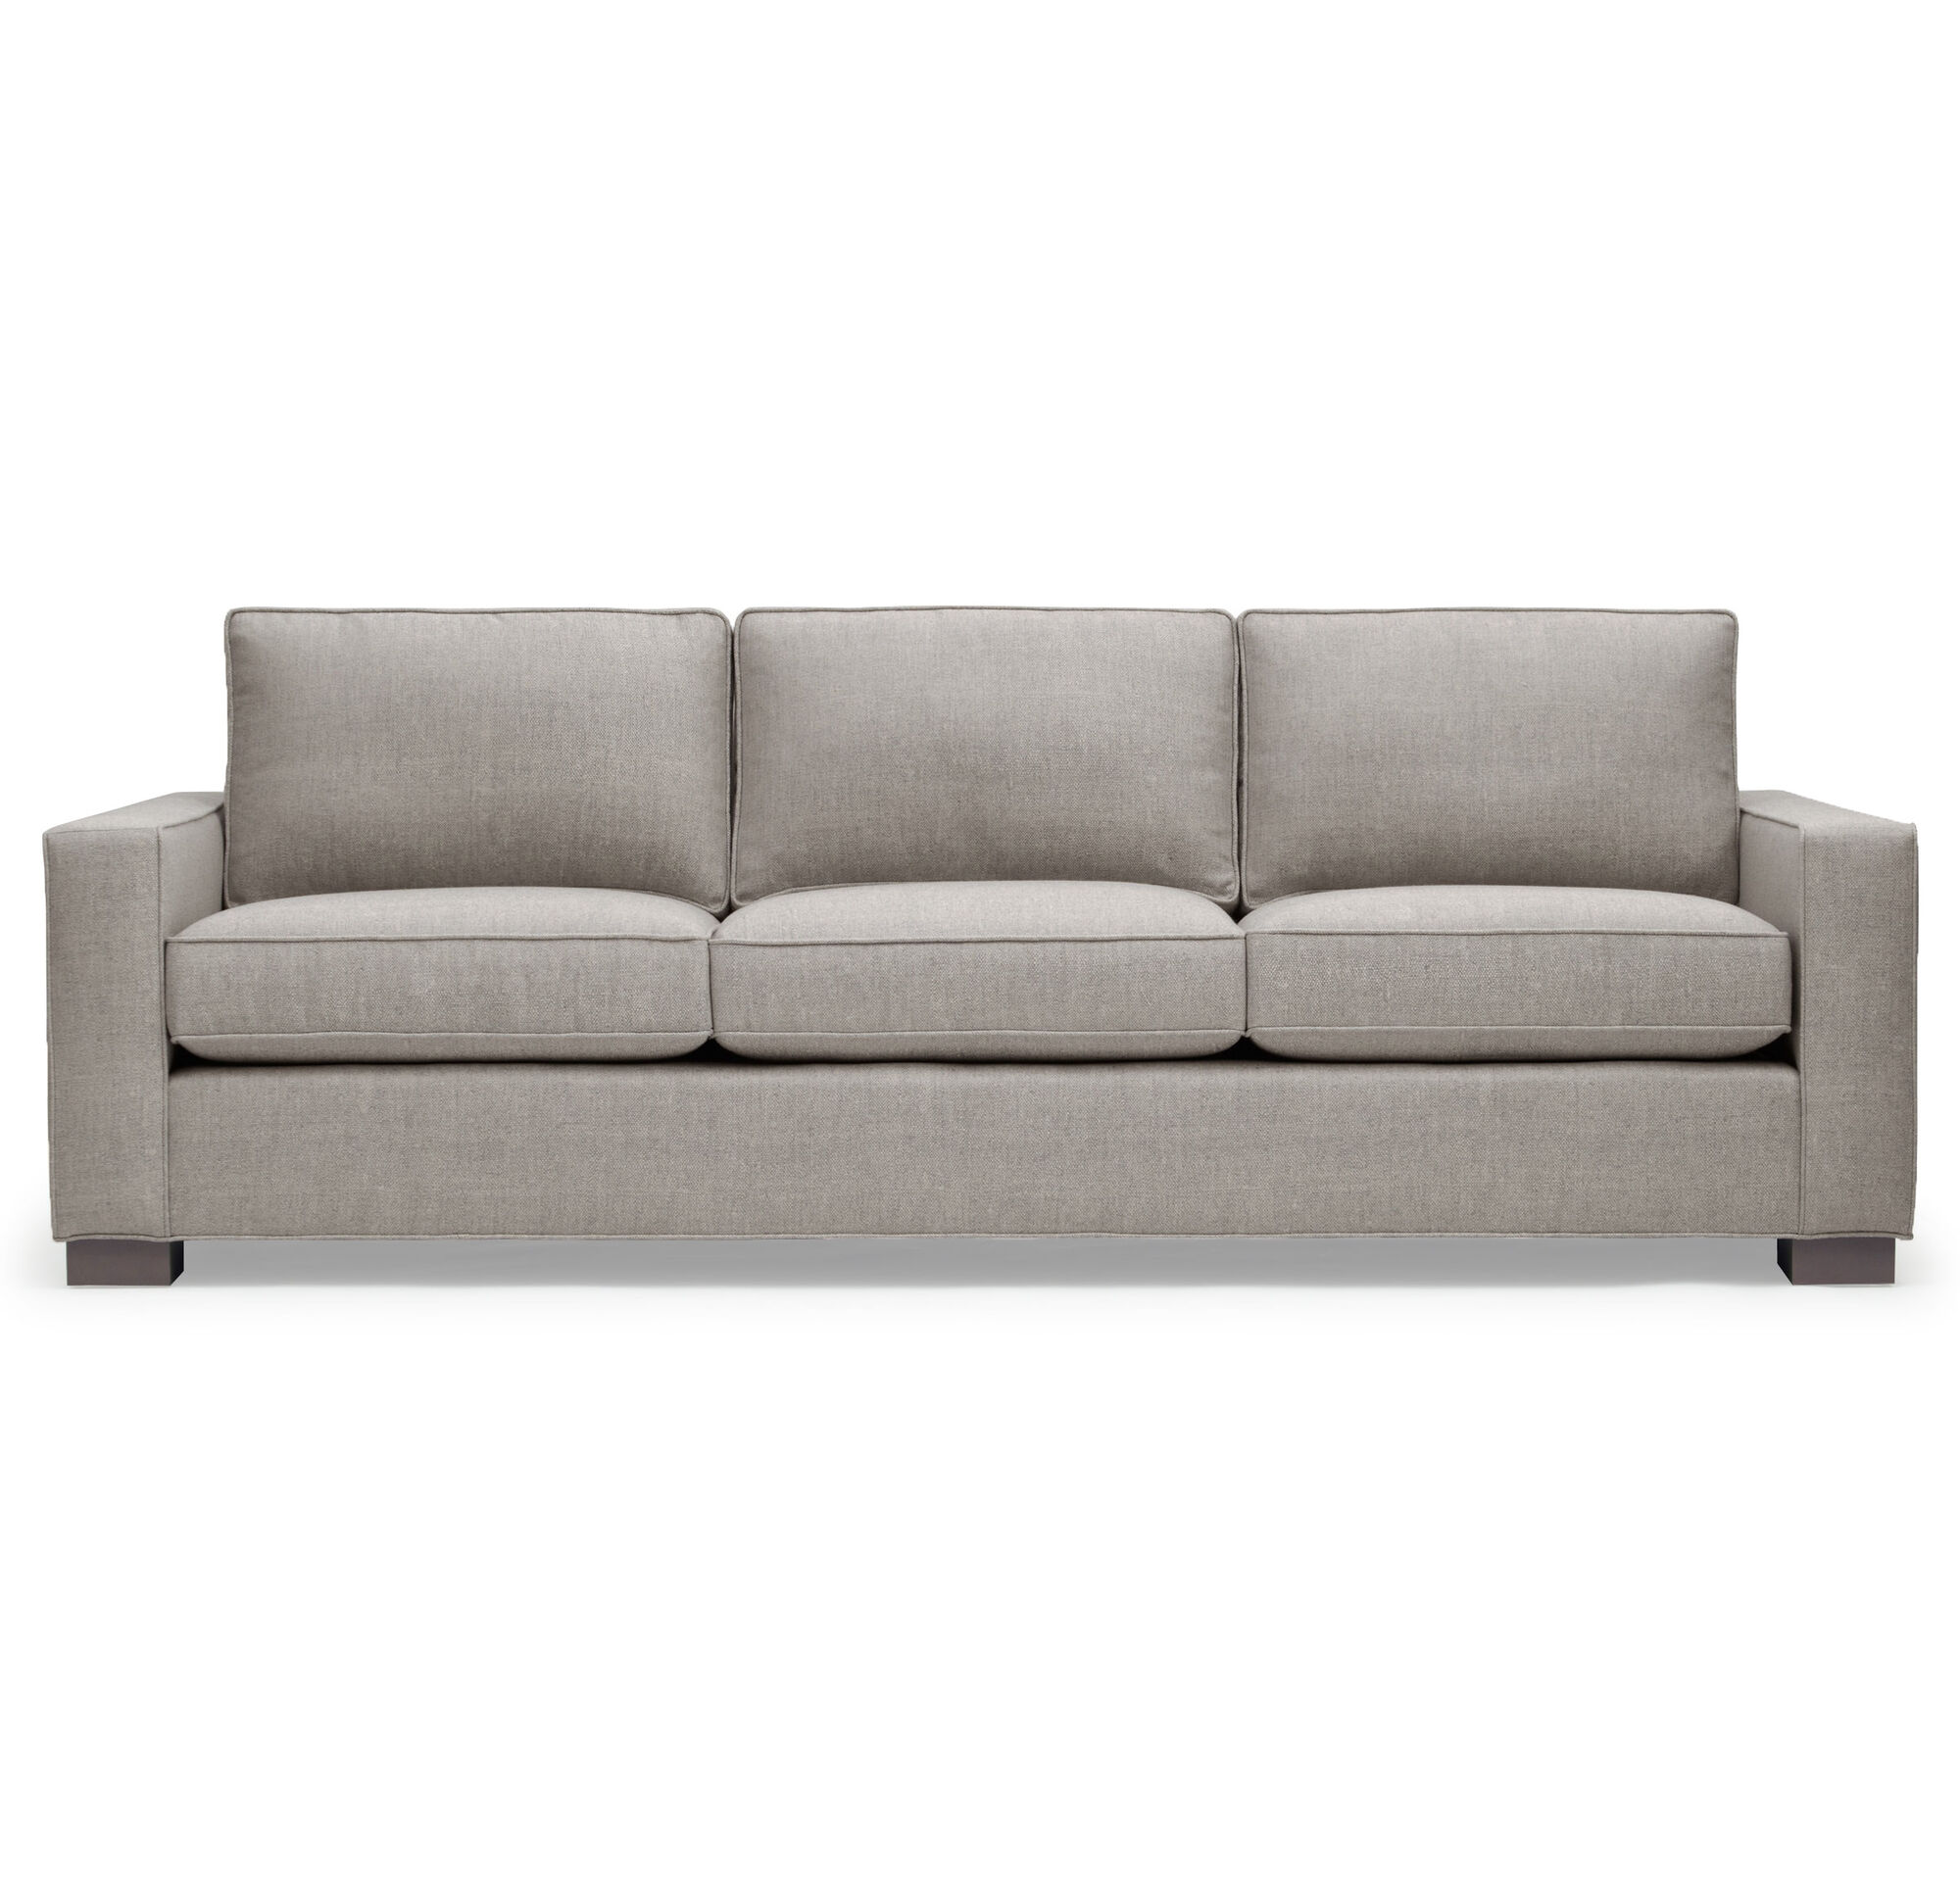 Enjoyable Carson Sofa Gmtry Best Dining Table And Chair Ideas Images Gmtryco